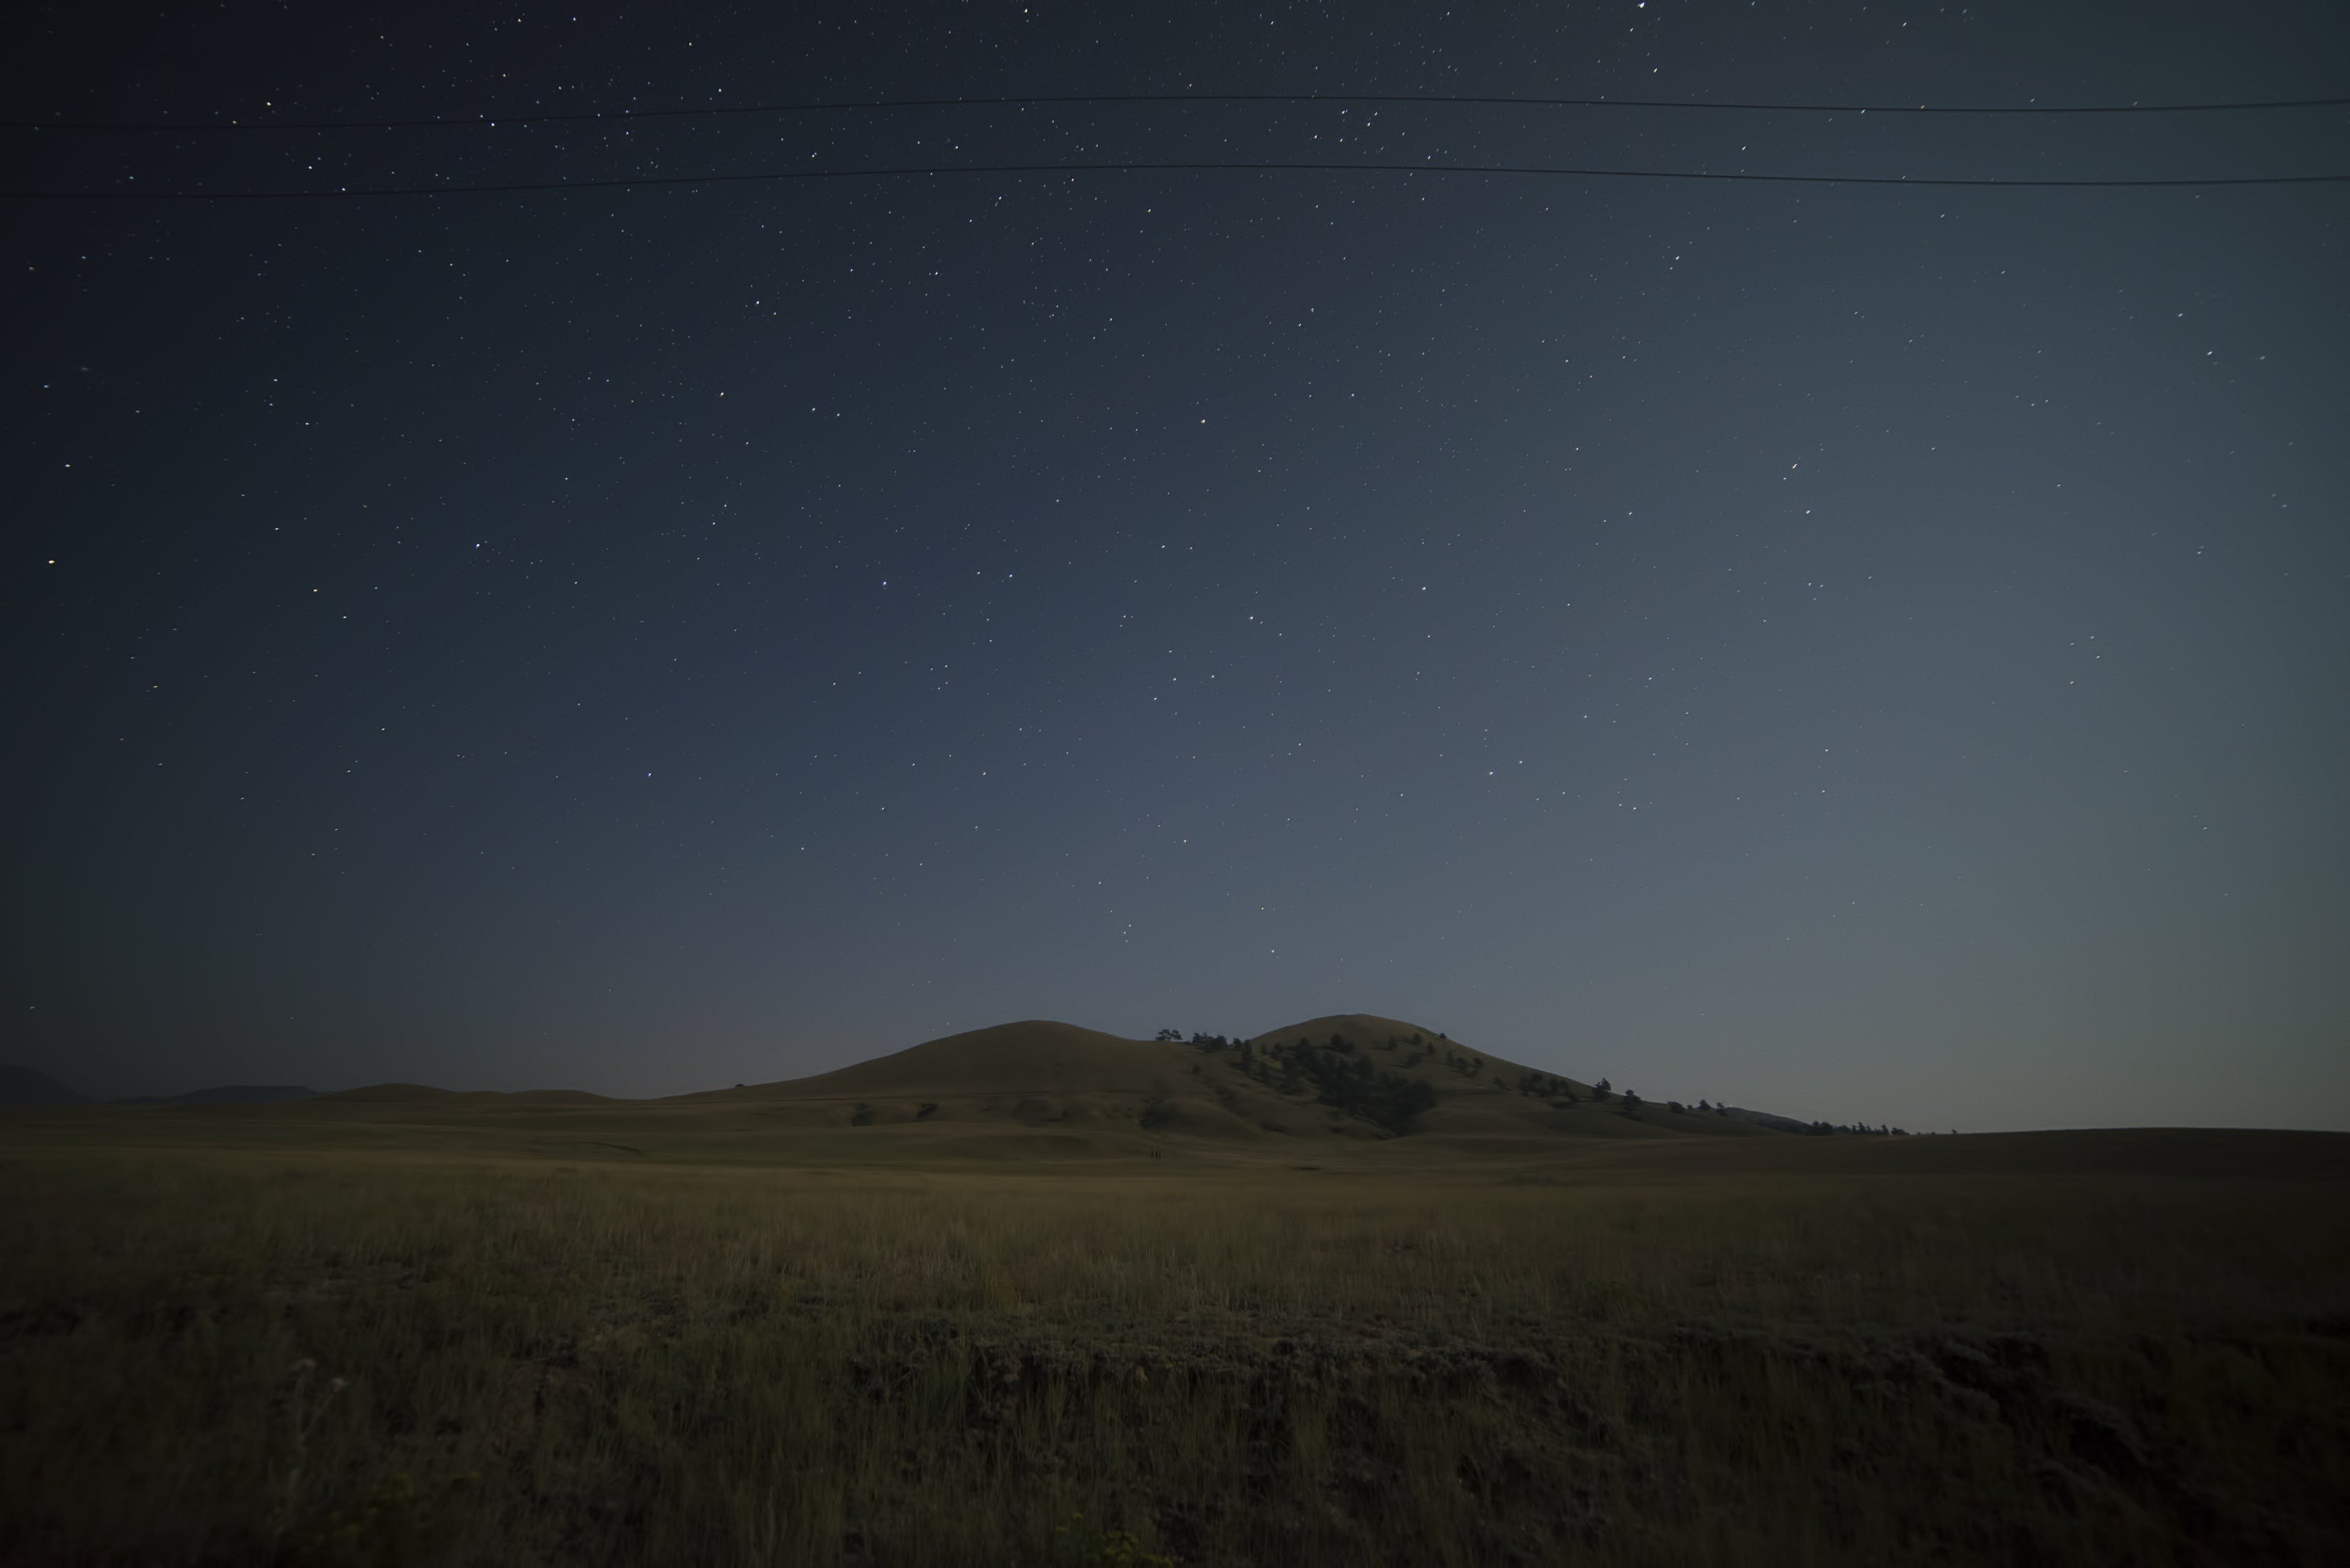 astrophotography, cosmos, hill